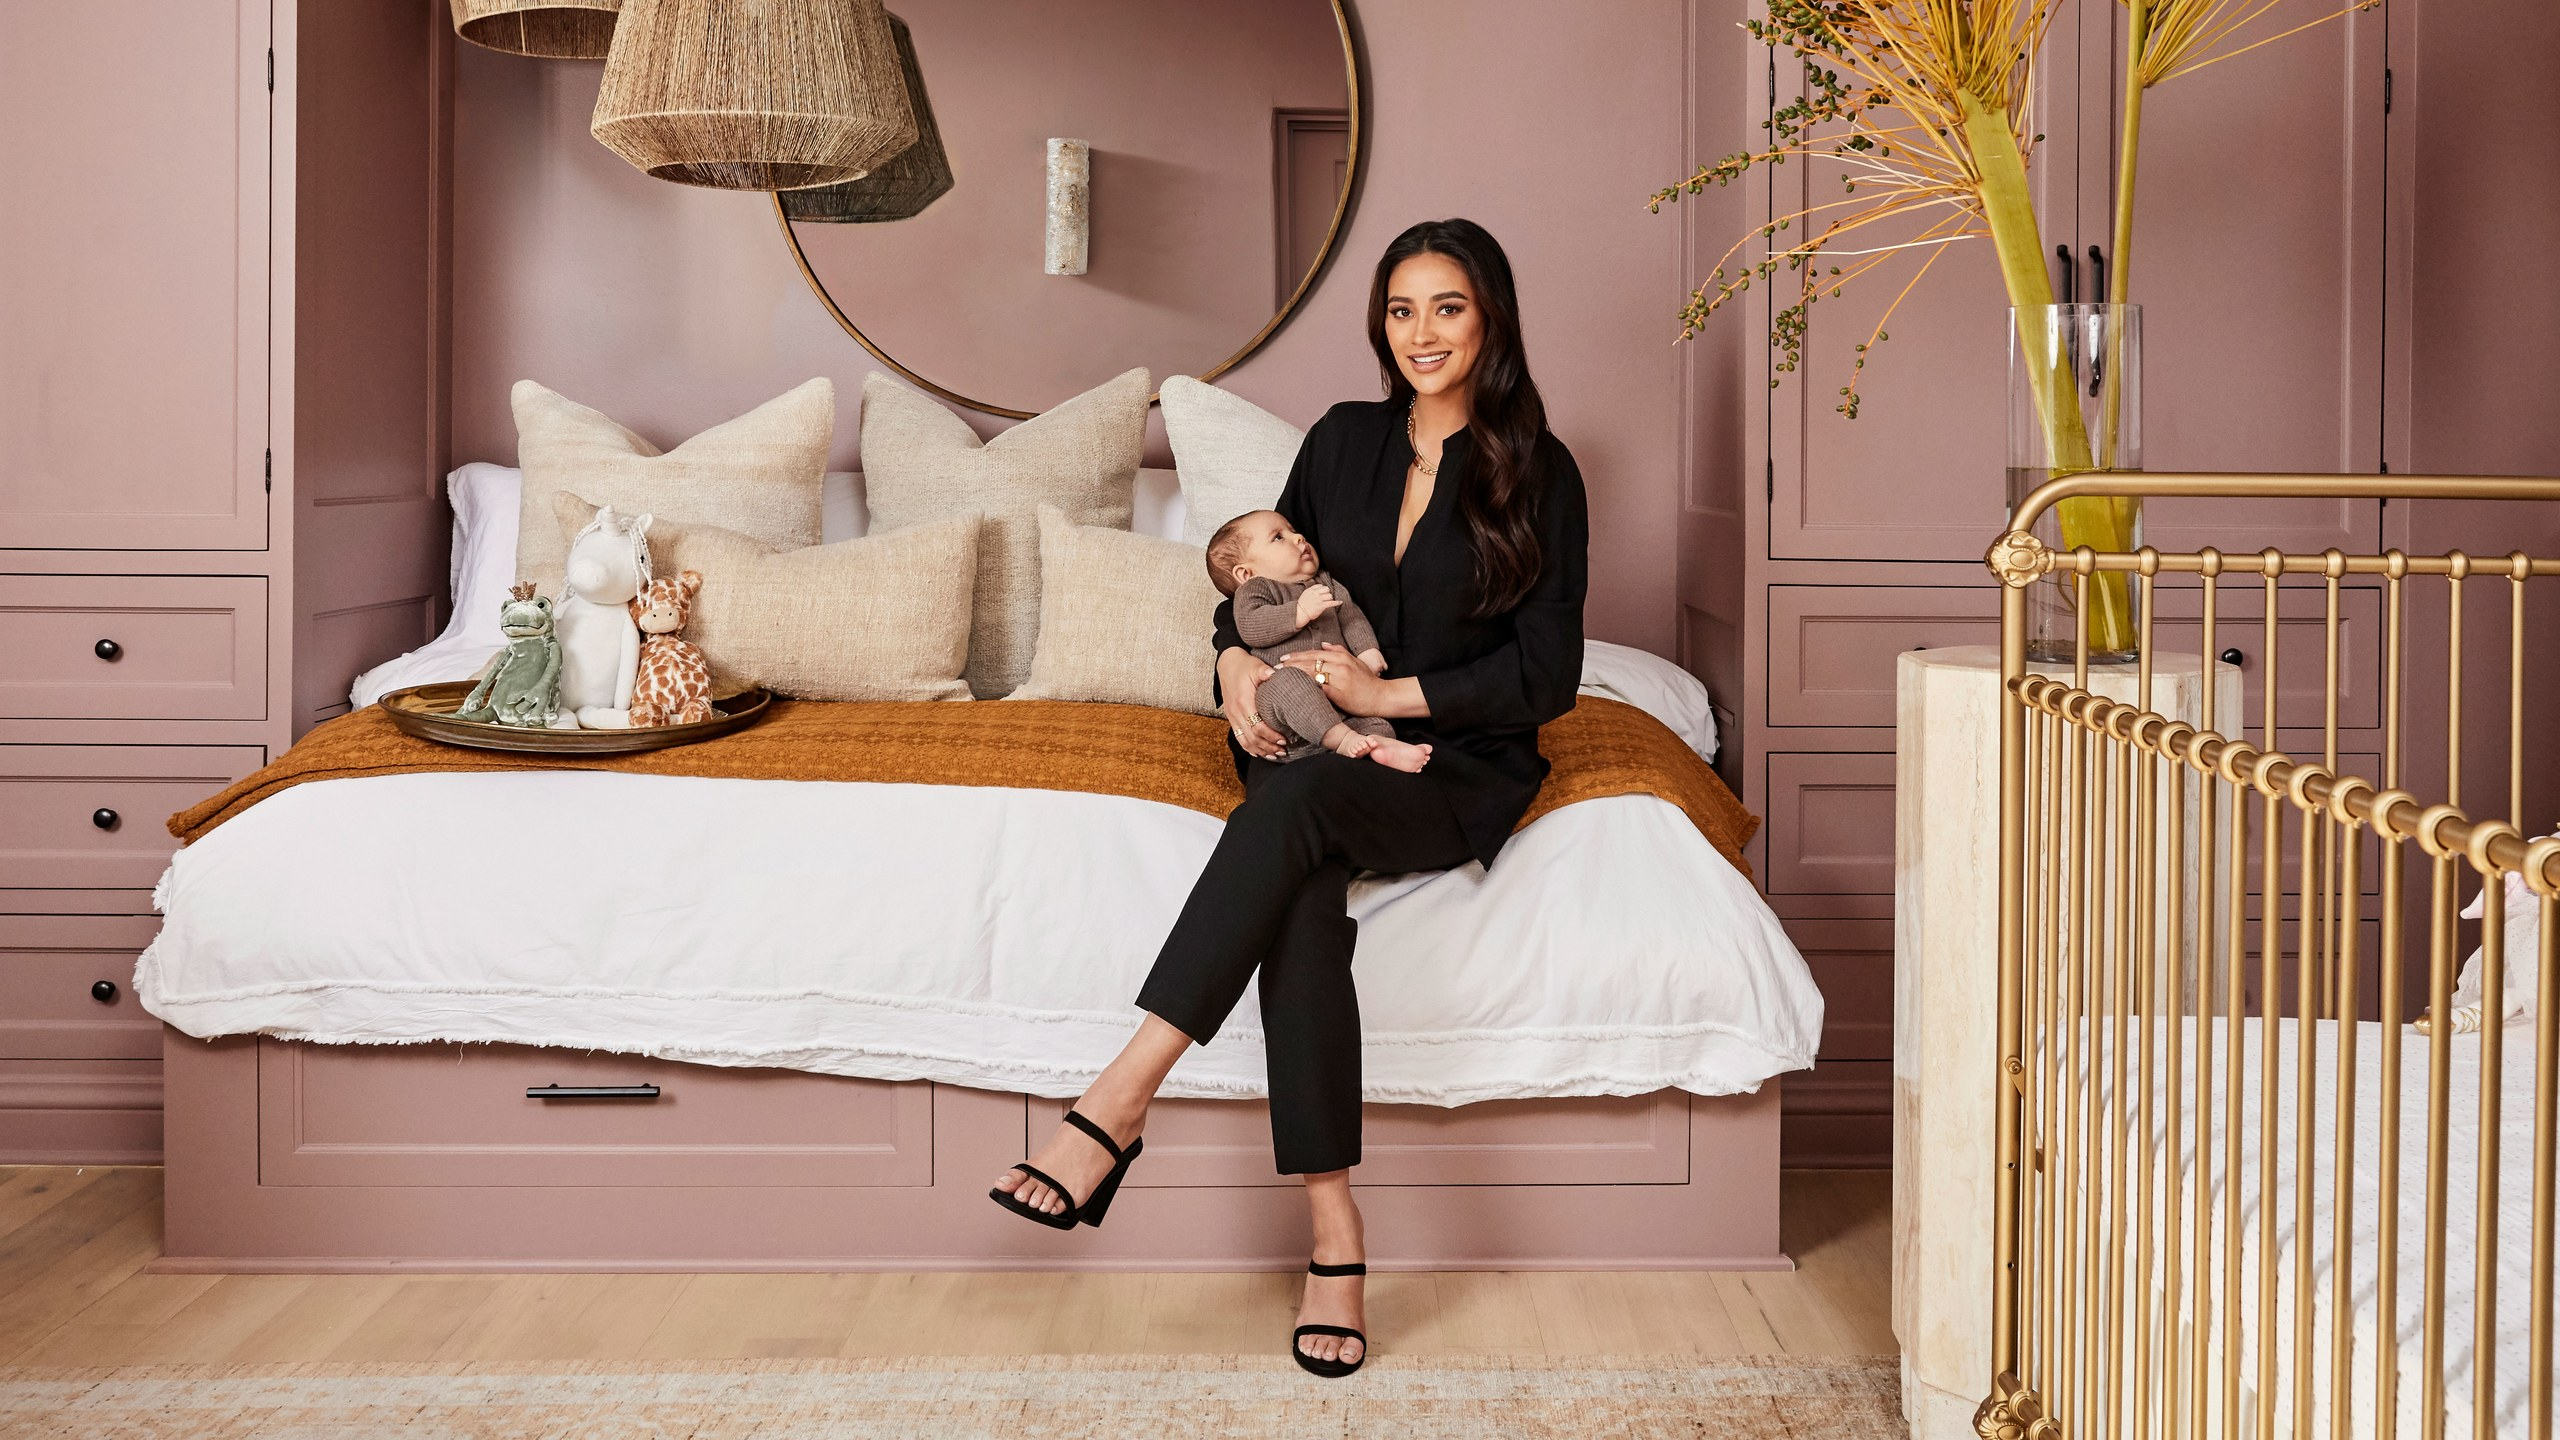 los angeles homes Los Angeles Homes: Meet Shay Mitchell's Redecorated Oasis 1111